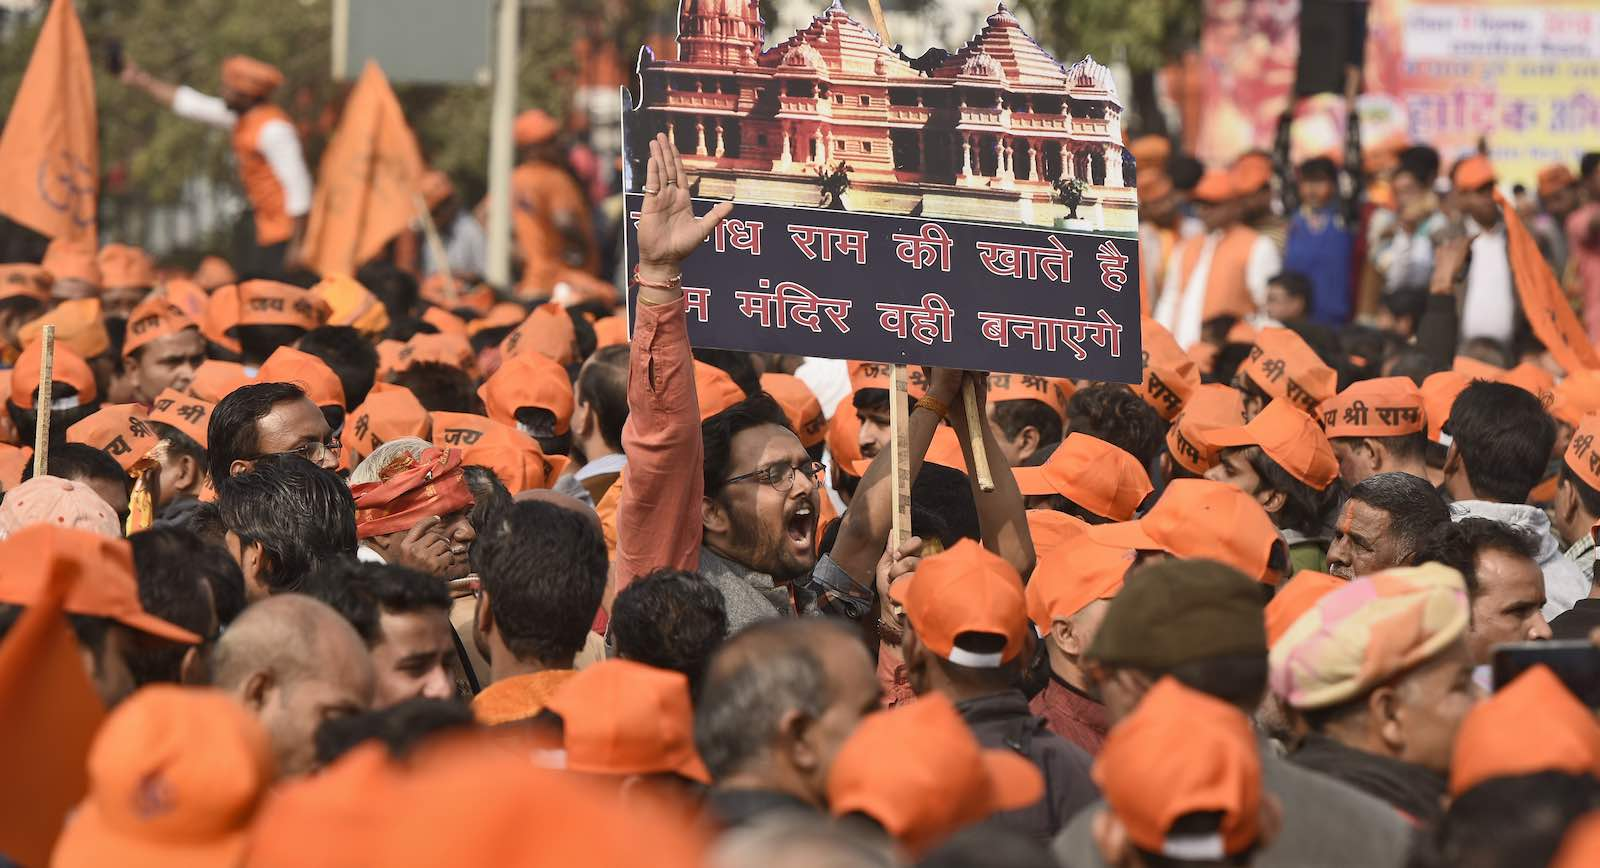 Supporters of the Vishva Hindu Parishad press their demands for the construction of Ram Temple in Ayodhya (Photo: Burhaan Kinu via Getty)